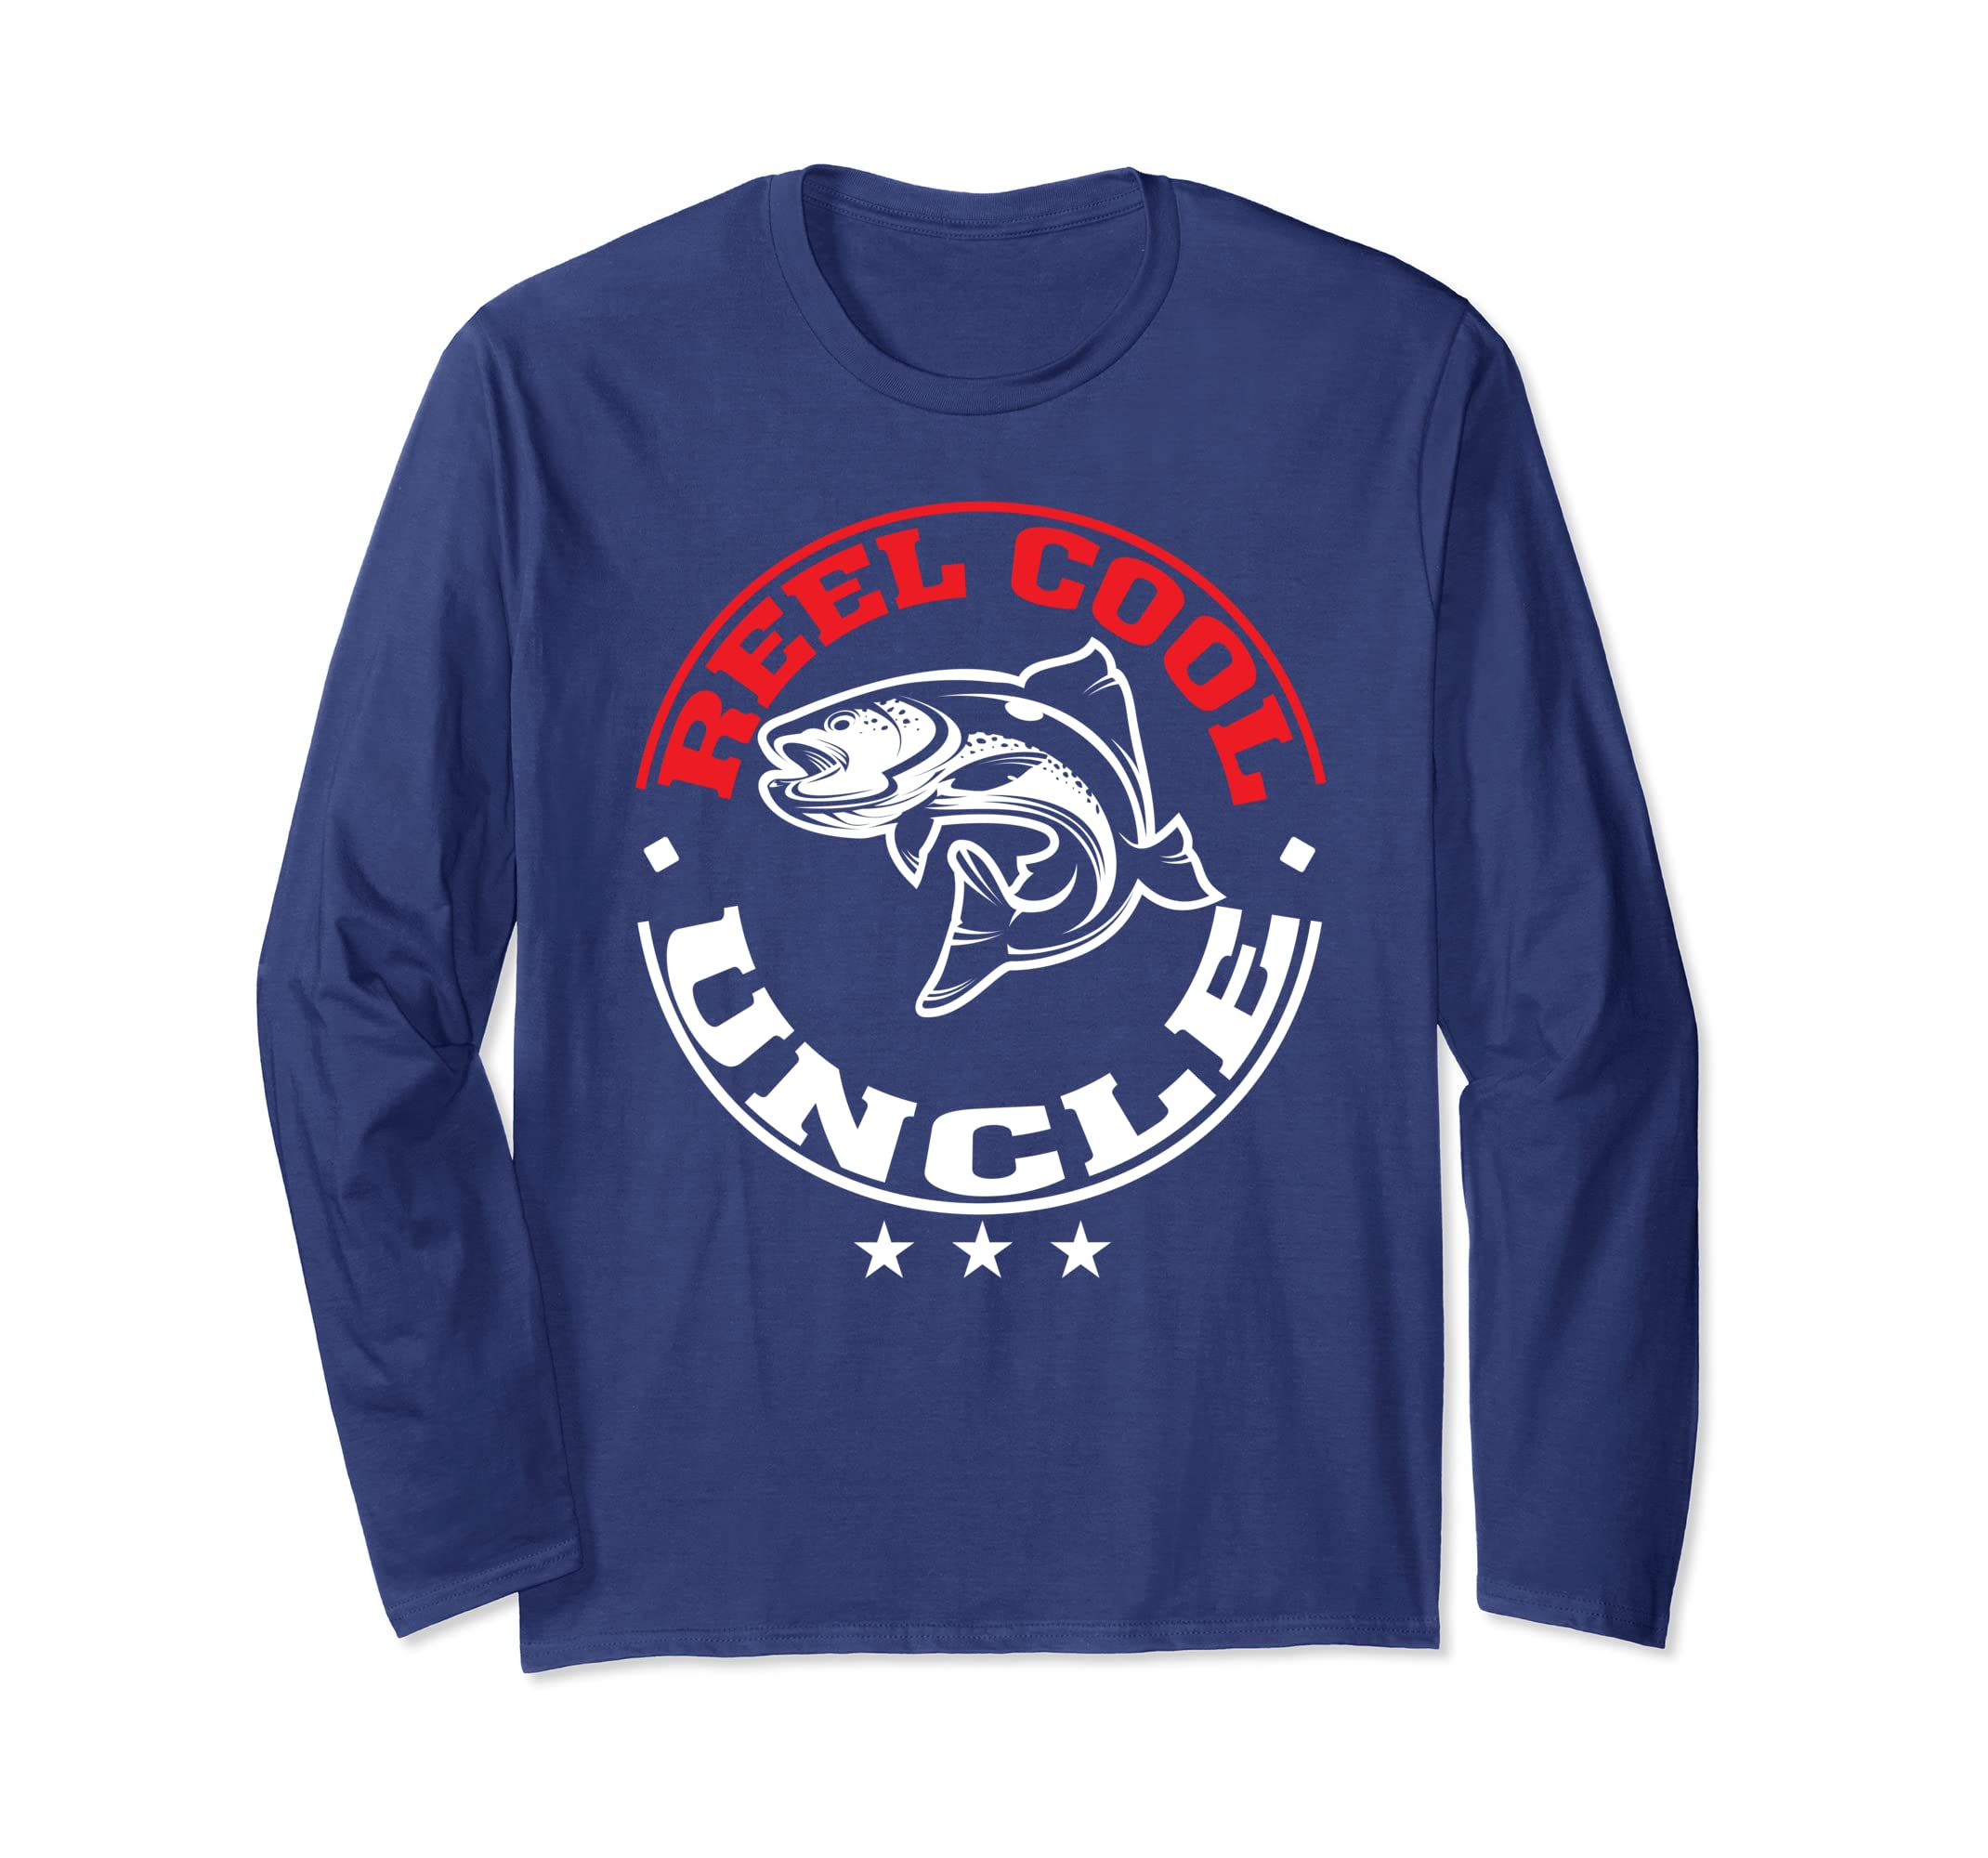 f0047b13 Amazon.com: Reel Cool Uncle Fishing Father's Day Long Sleeve T-Shirt:  Clothing